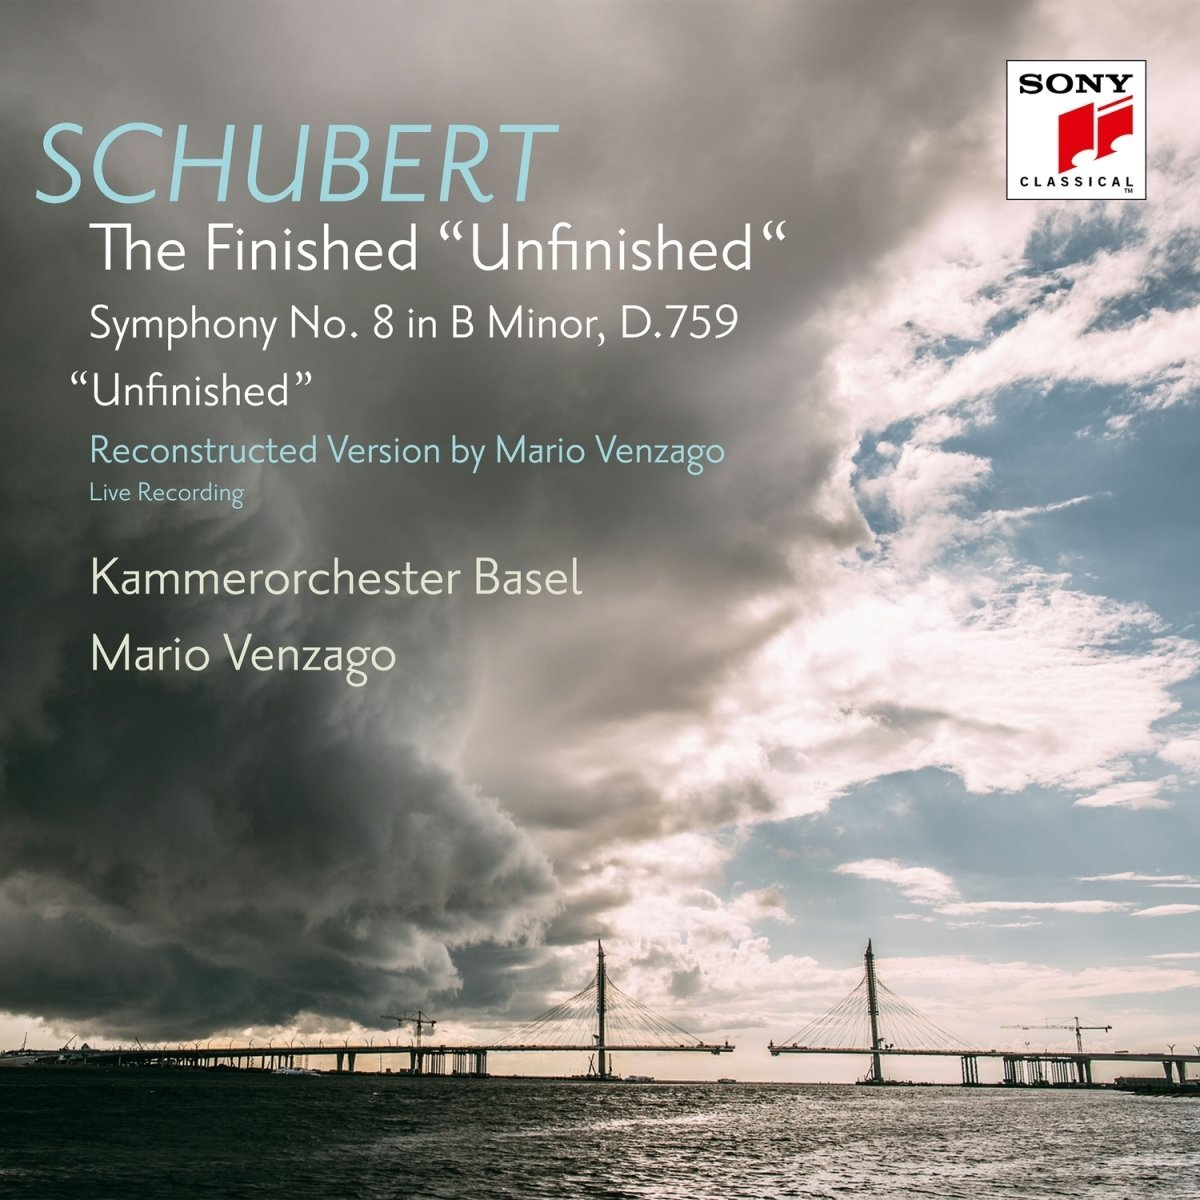 Schubert Unfinished